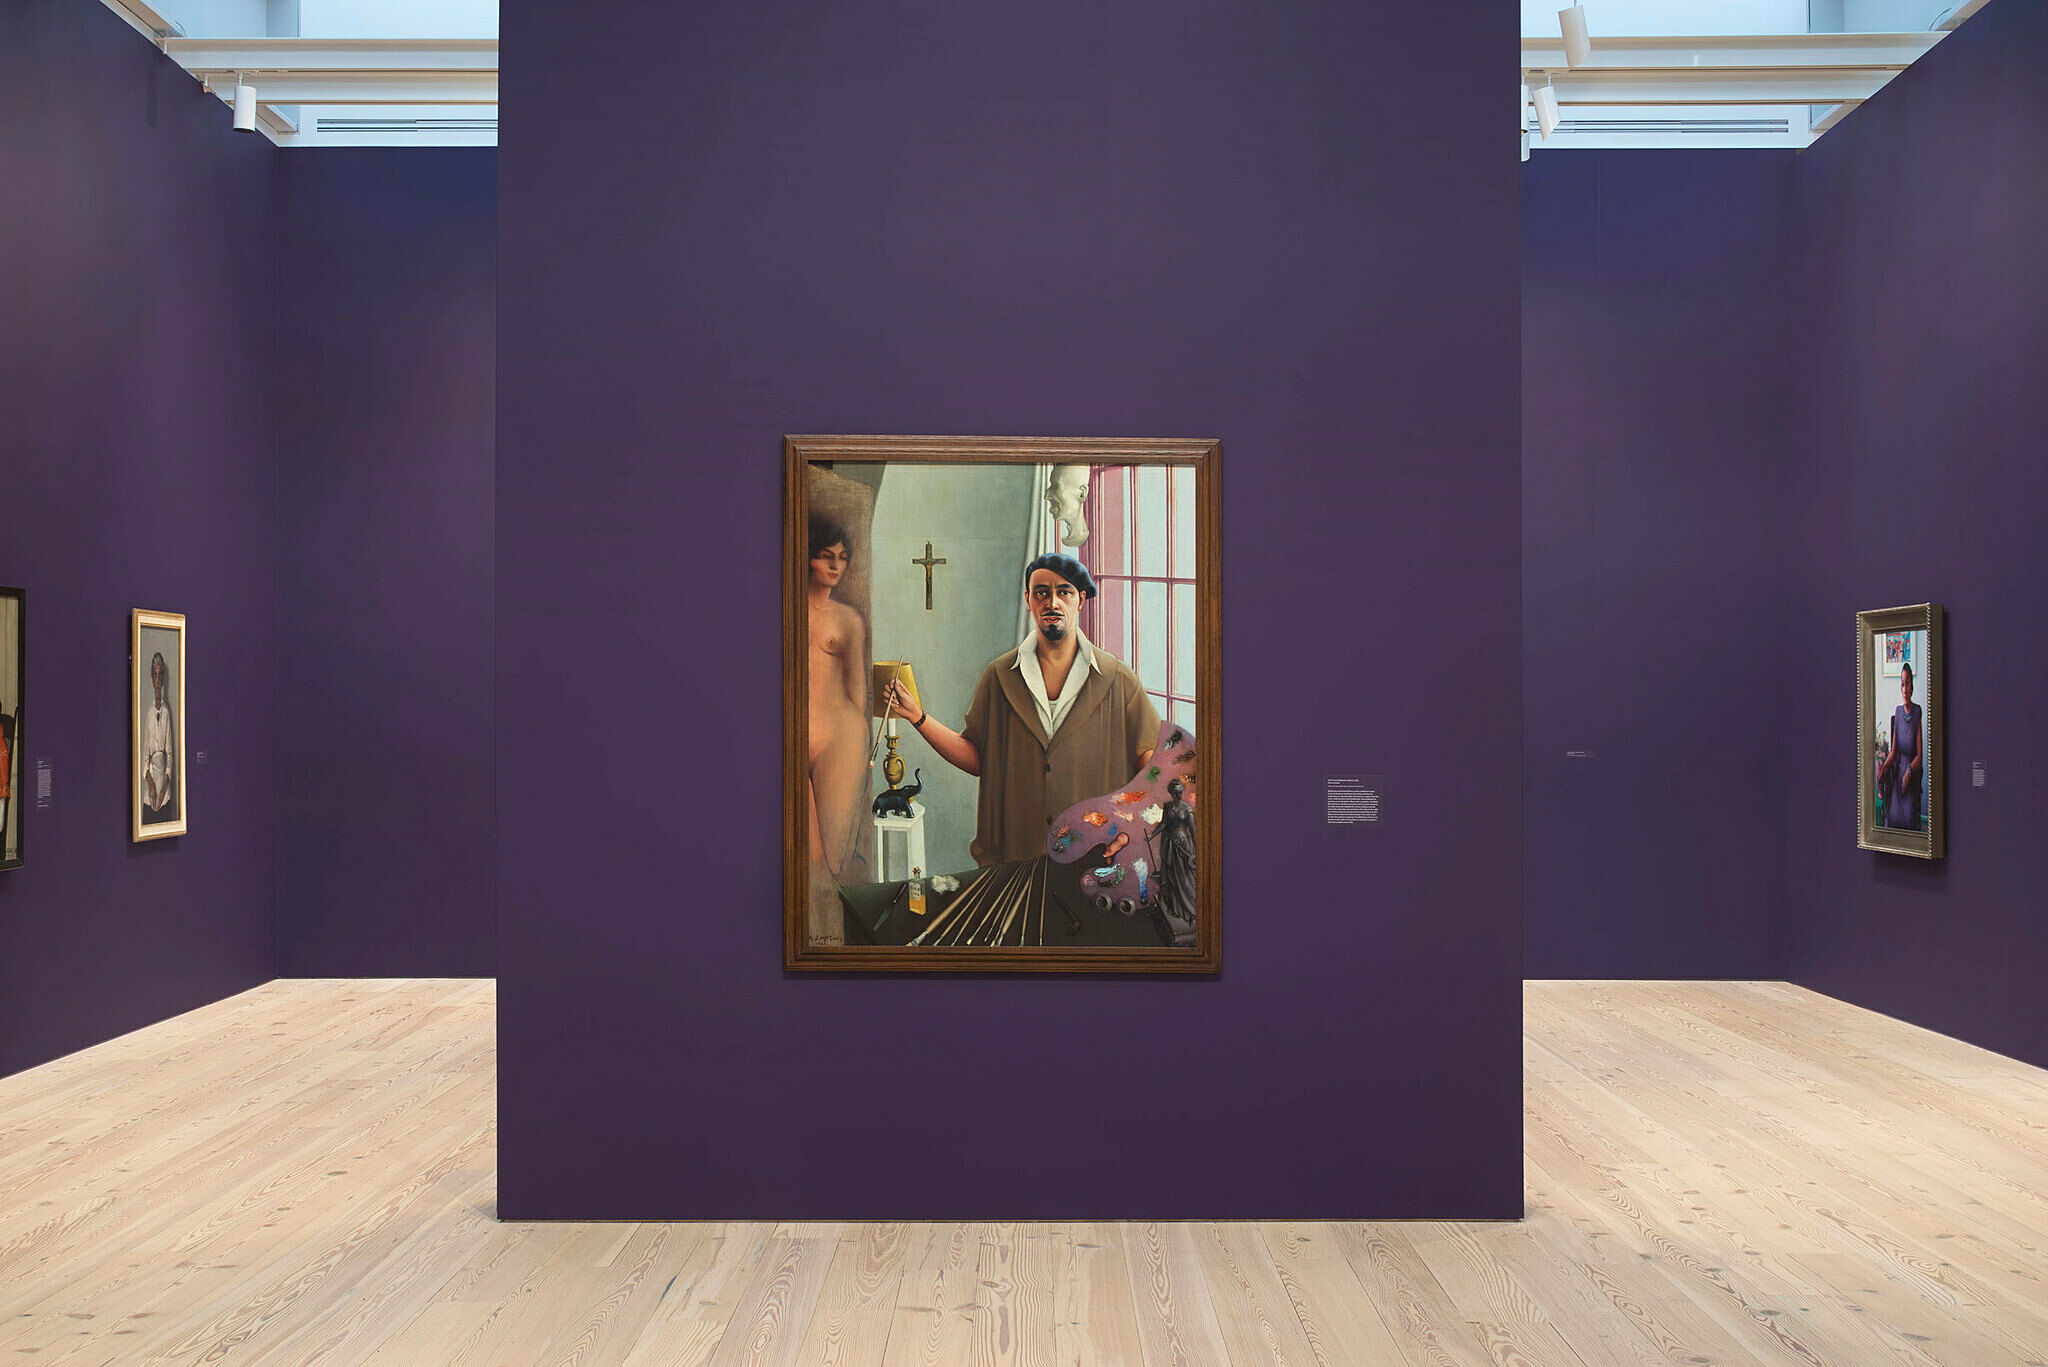 An art gallery with purple walls.